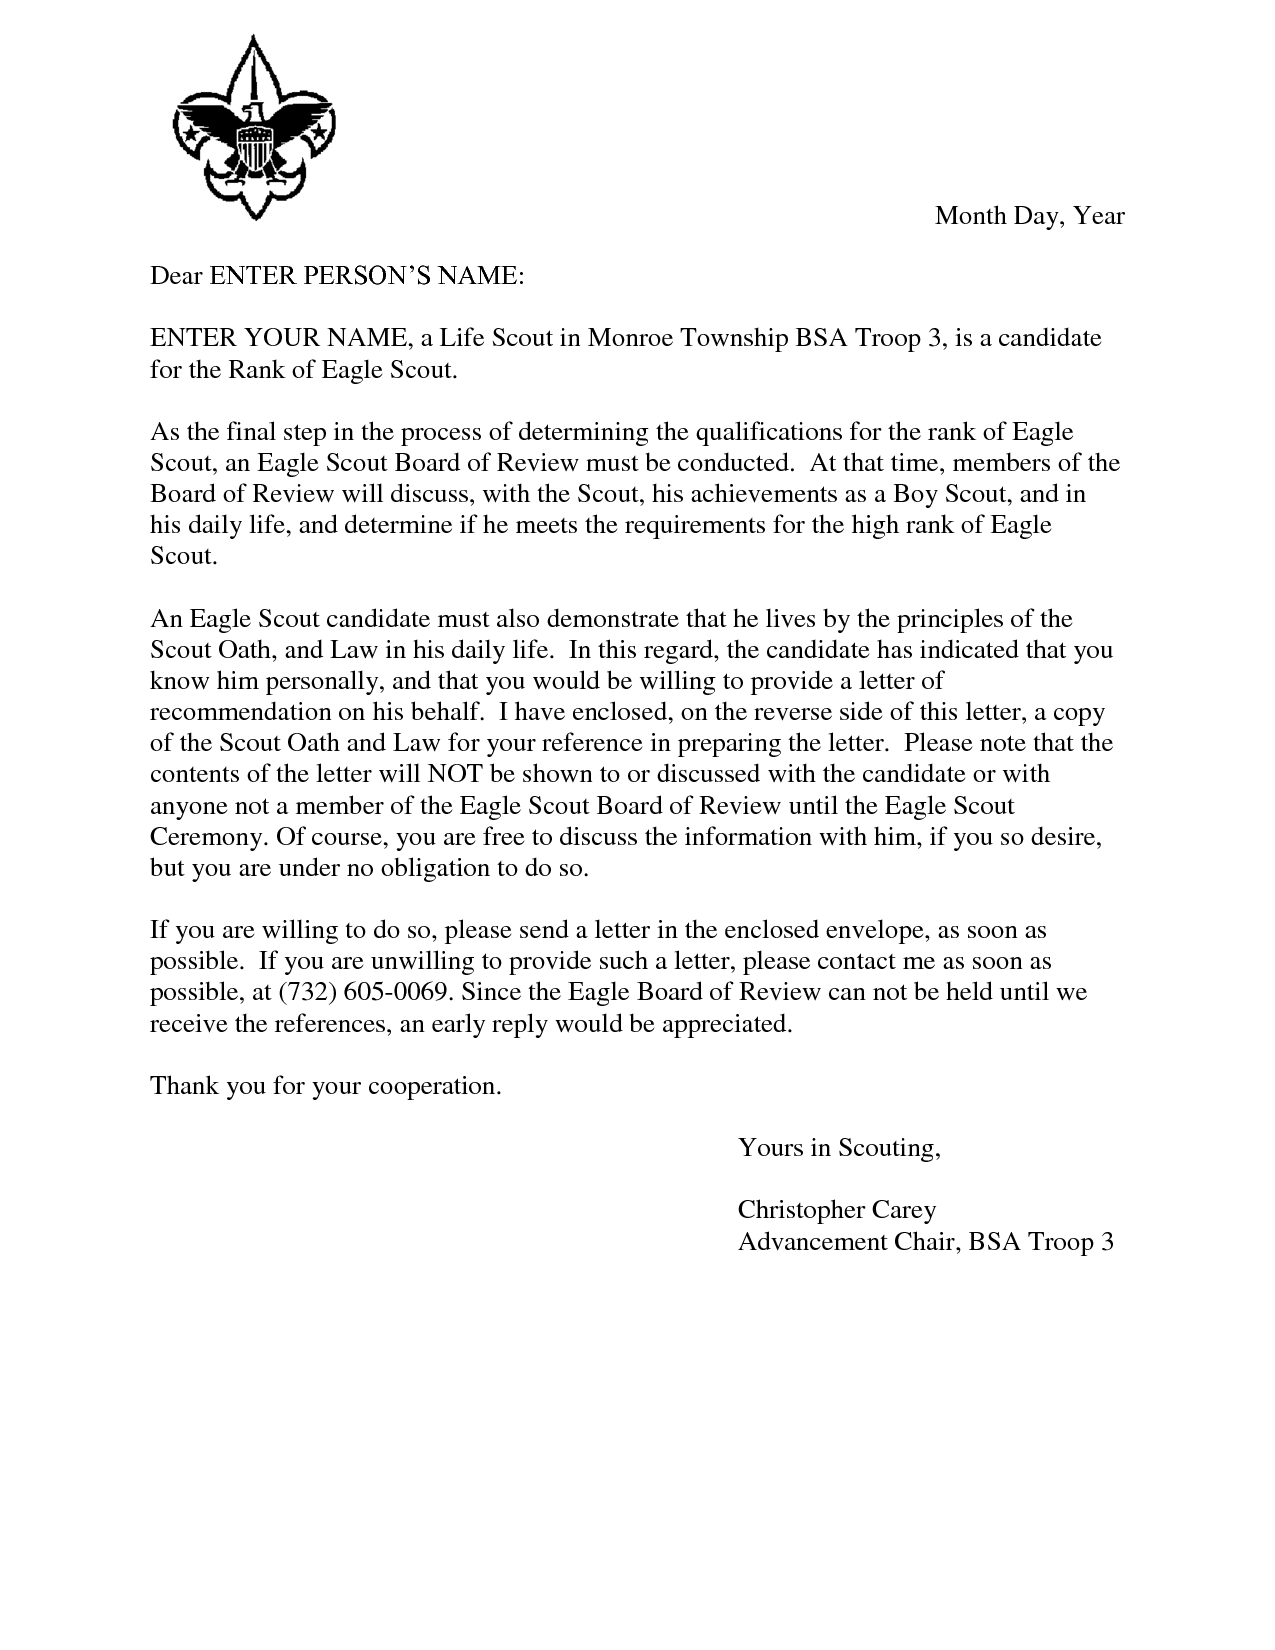 Eagle Scout Reference Request Sample Letter DOC 7 by Hfr990Q